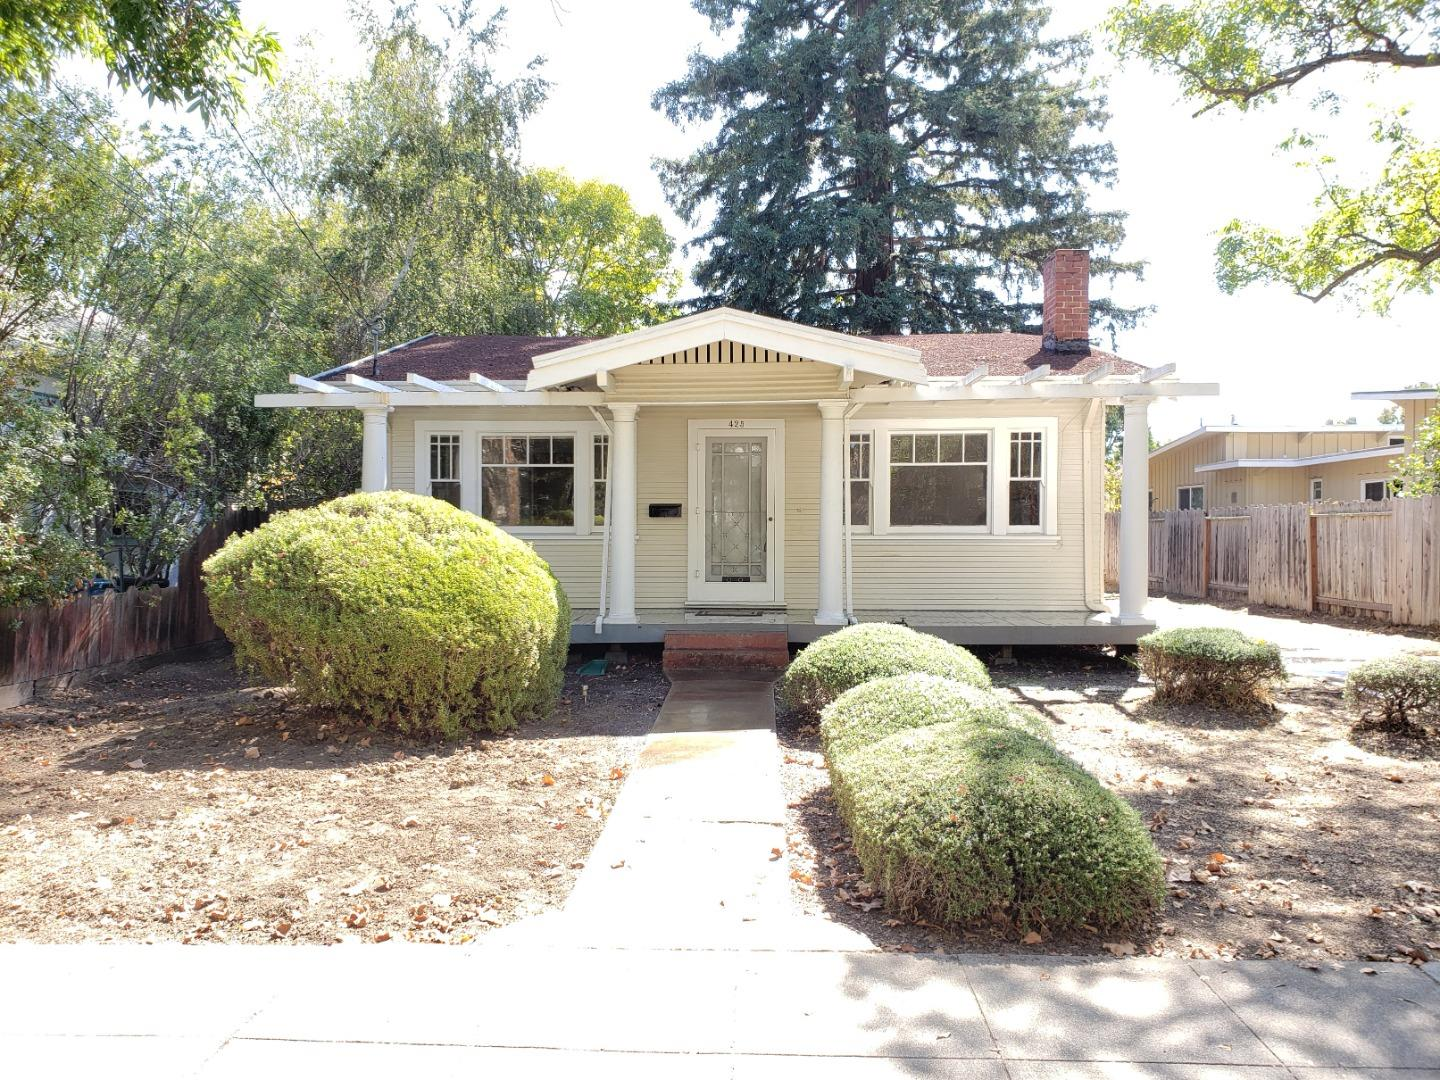 Photo for 425 Stanford AVE, PALO ALTO, CA 94306 (MLS # ML81812133)